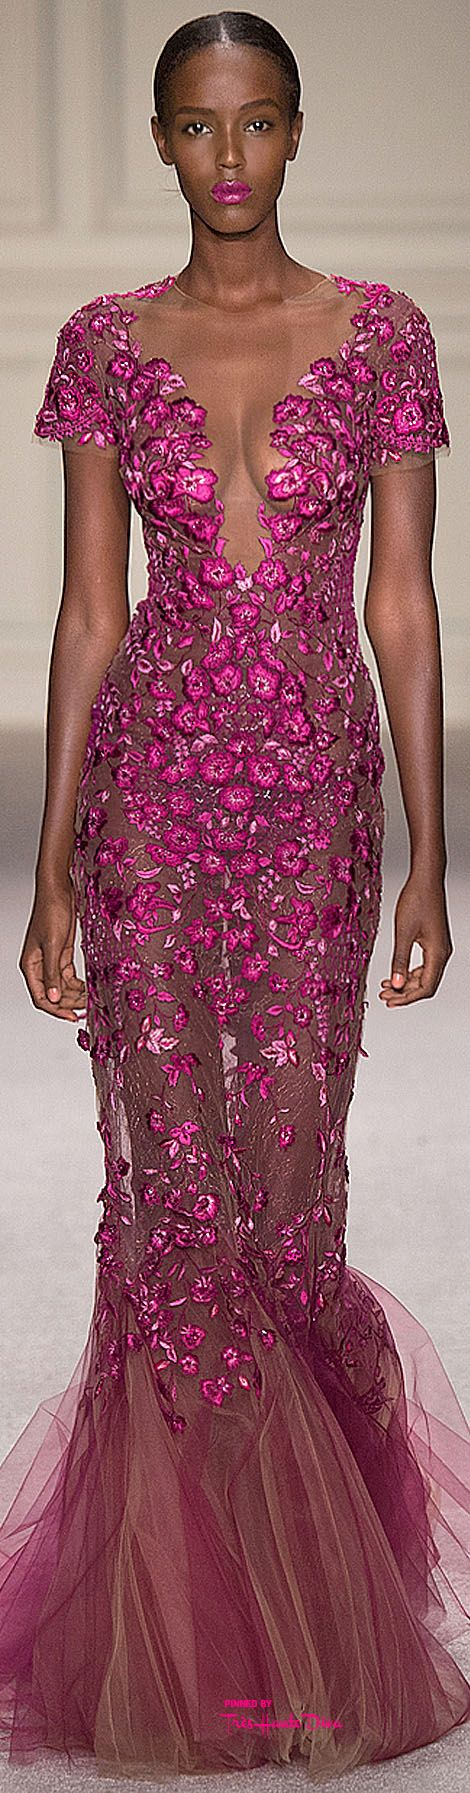 453 best Marchesa images on Pinterest | High fashion, Lace and ...